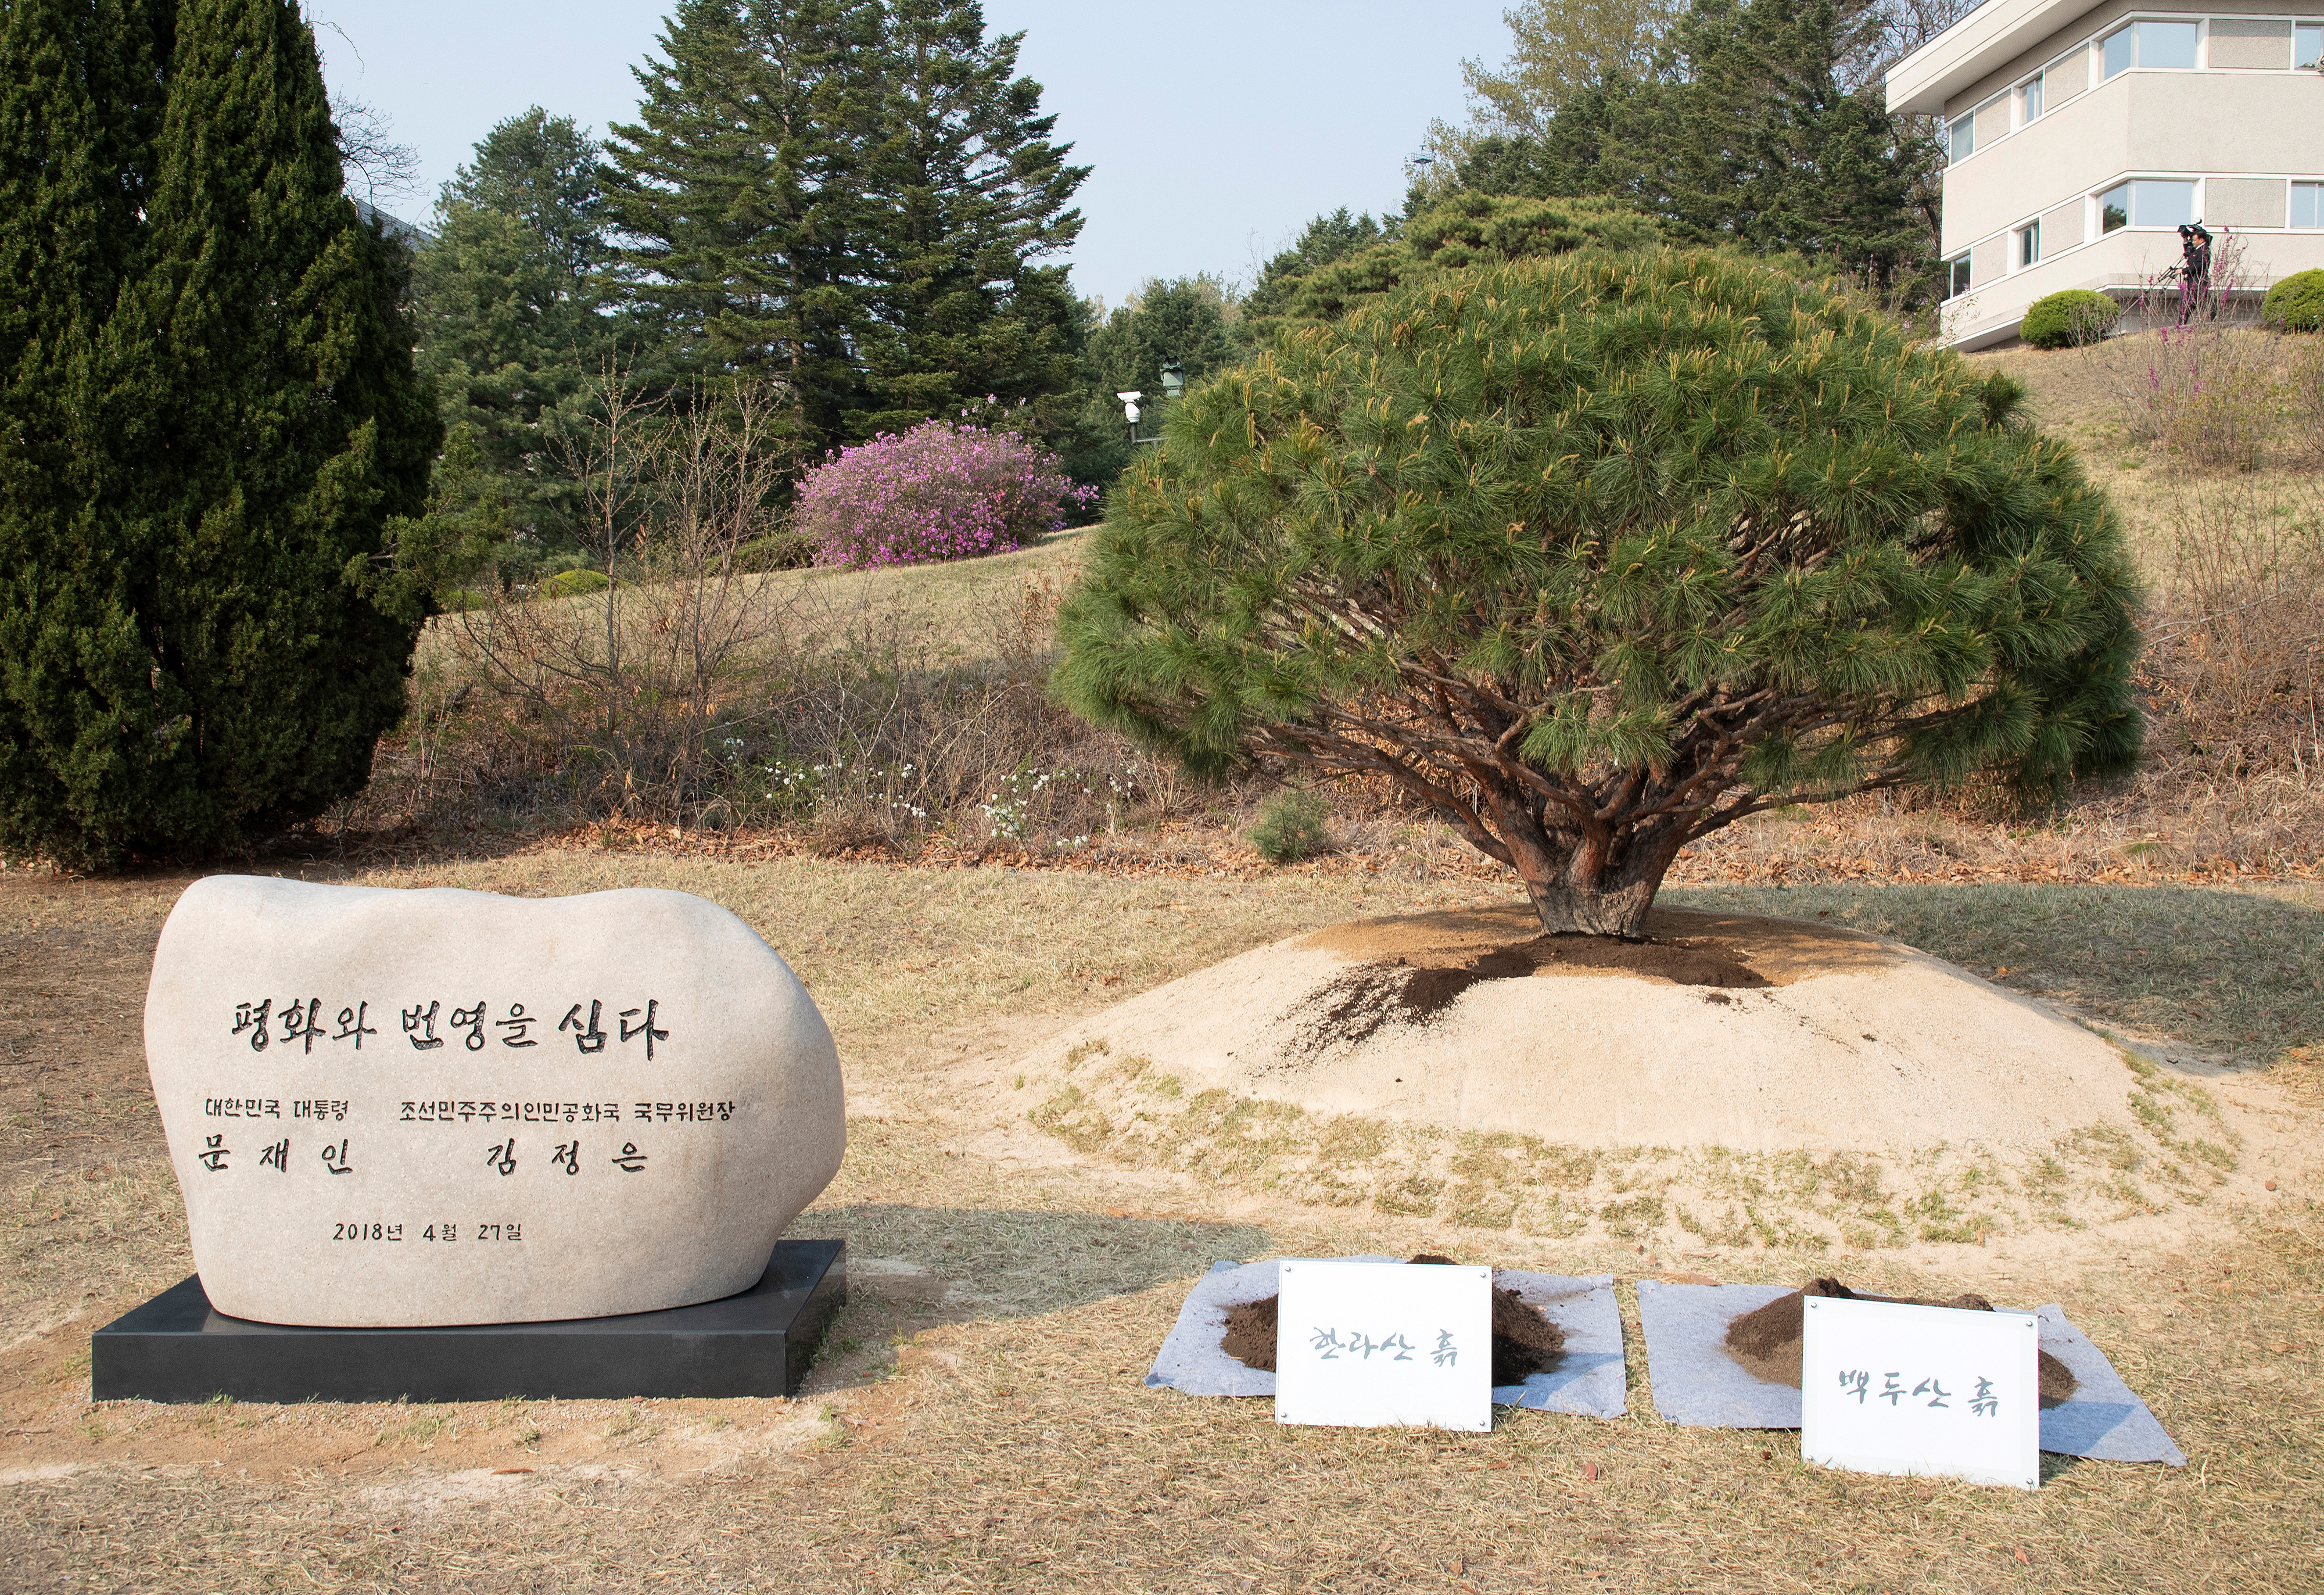 A plaque and a tree planted by South Korean President Moon Jae-in and North Korean leader Kim Jong Un at the truce village of Panmunjom inside the demilitarized zone separating the two Koreas, South Korea, April 27, 2018.   Korea Summit Press Pool/Pool via Reuters - RC1A46646D80